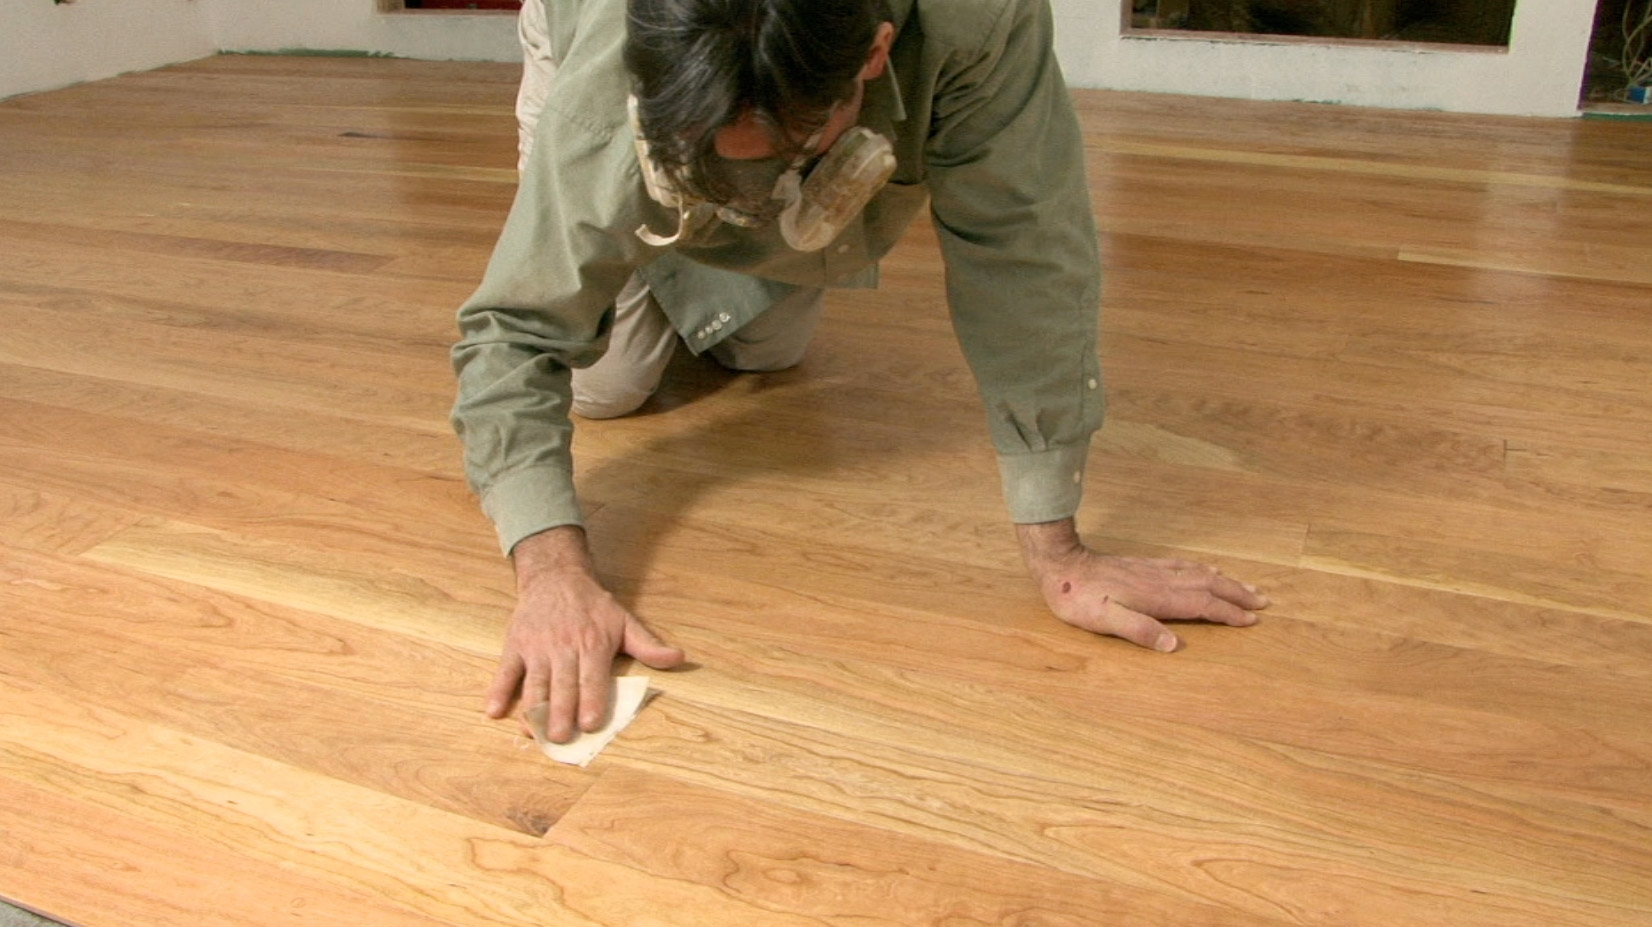 Solid Wood Floor Fixing Screws